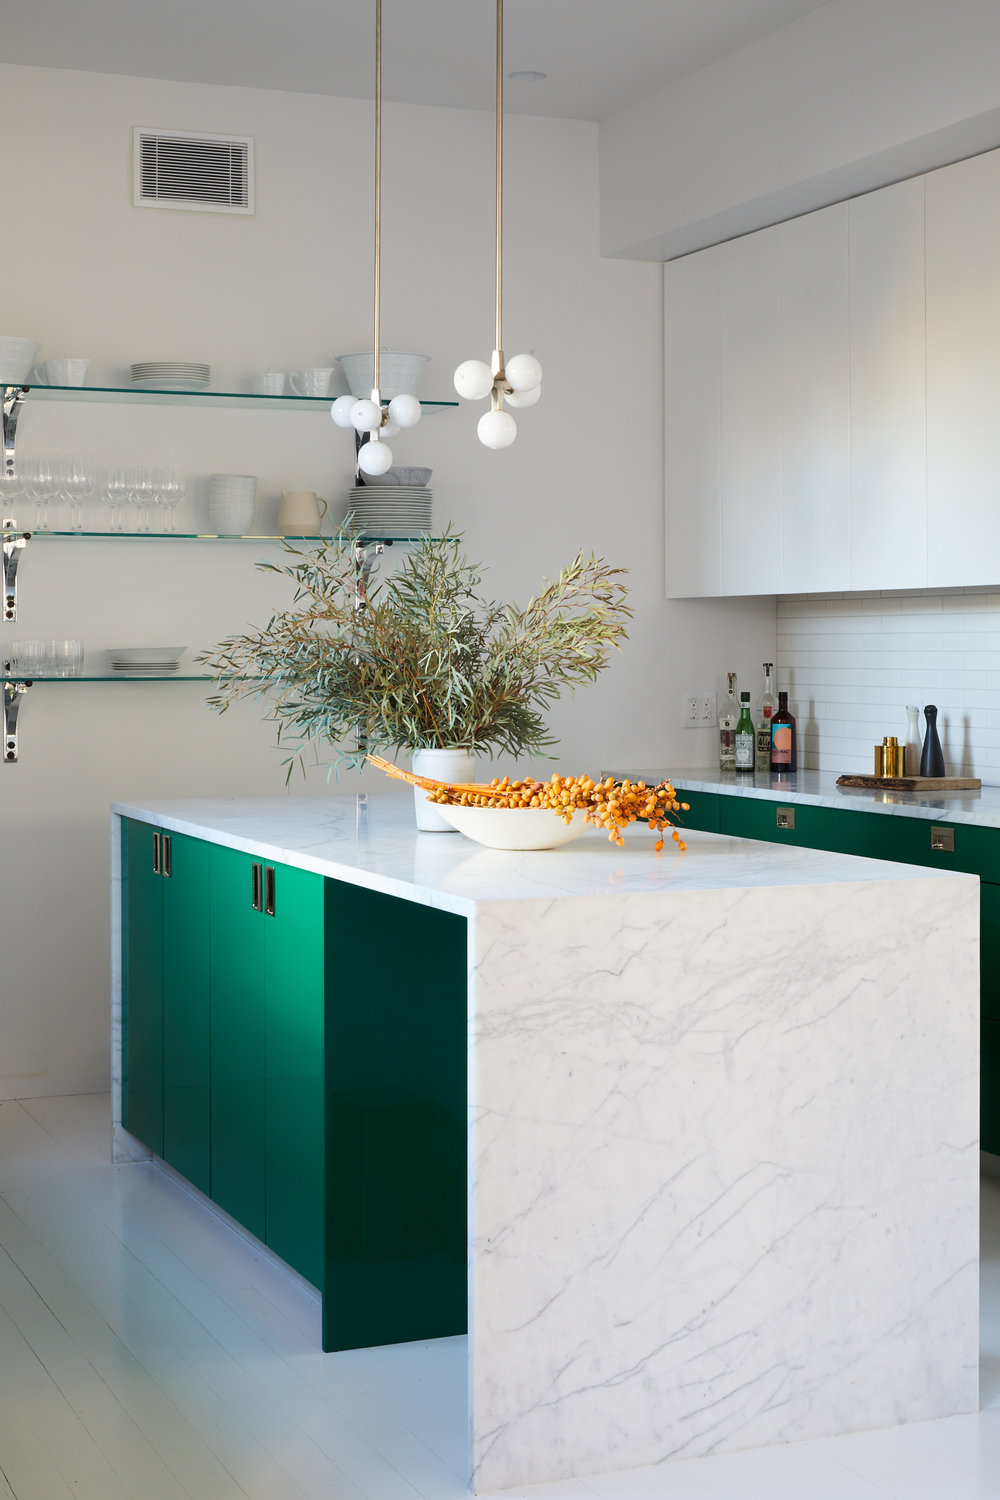 West_19th_Kitchen_044.jpg